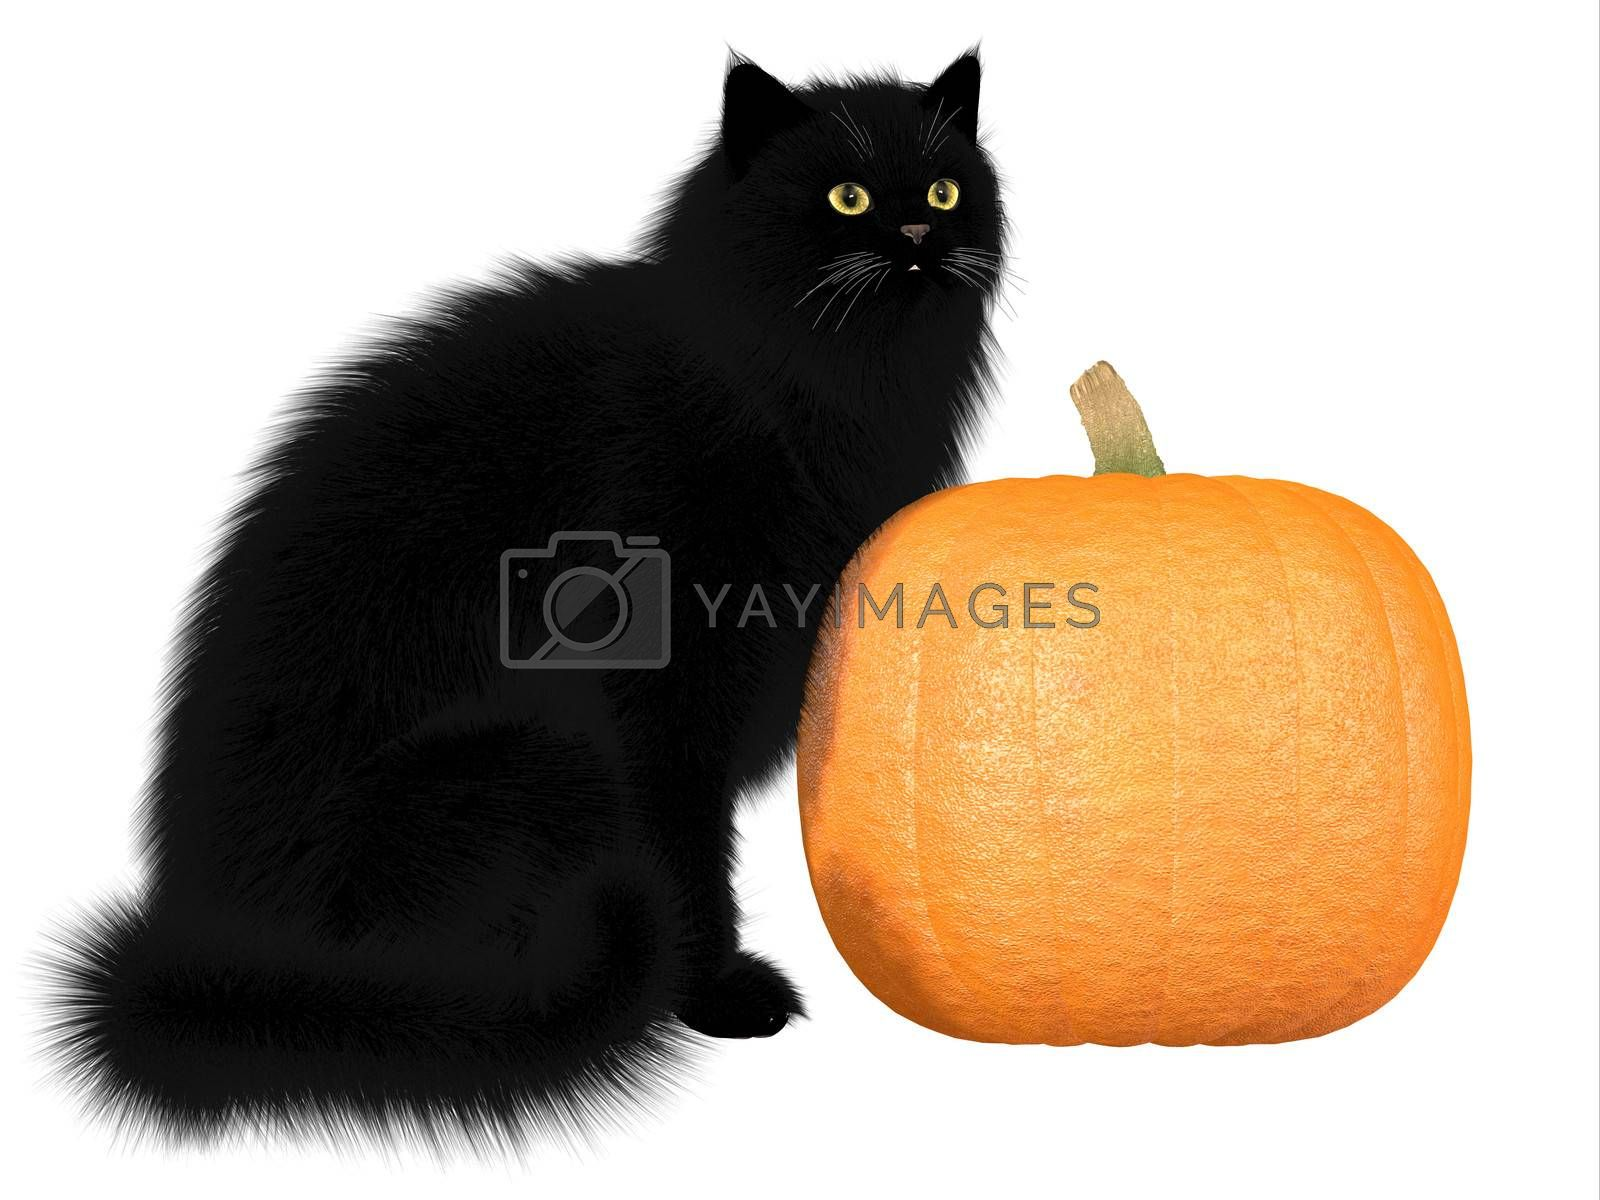 The black cat and pumpkins are a symbol of autumn seasonal Halloween festivities.